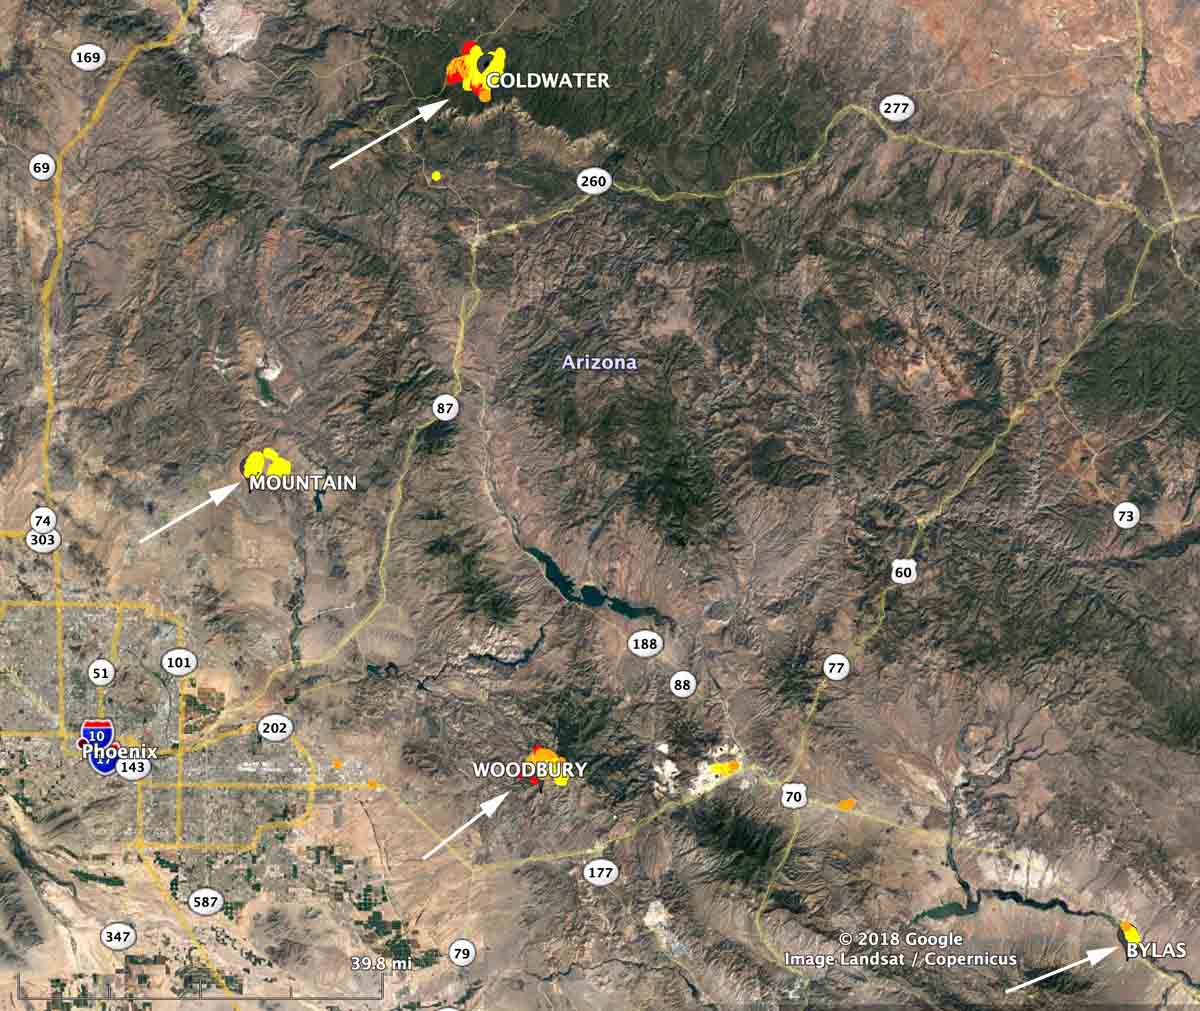 map of white mountain area, map of laughlin casinos, map idaho mountains, arizona major mountains, map of az, map california mountains, location of superstition mountains, new mexico map with mountains, map utah mountains, map of nevada, on map of arizona mountains